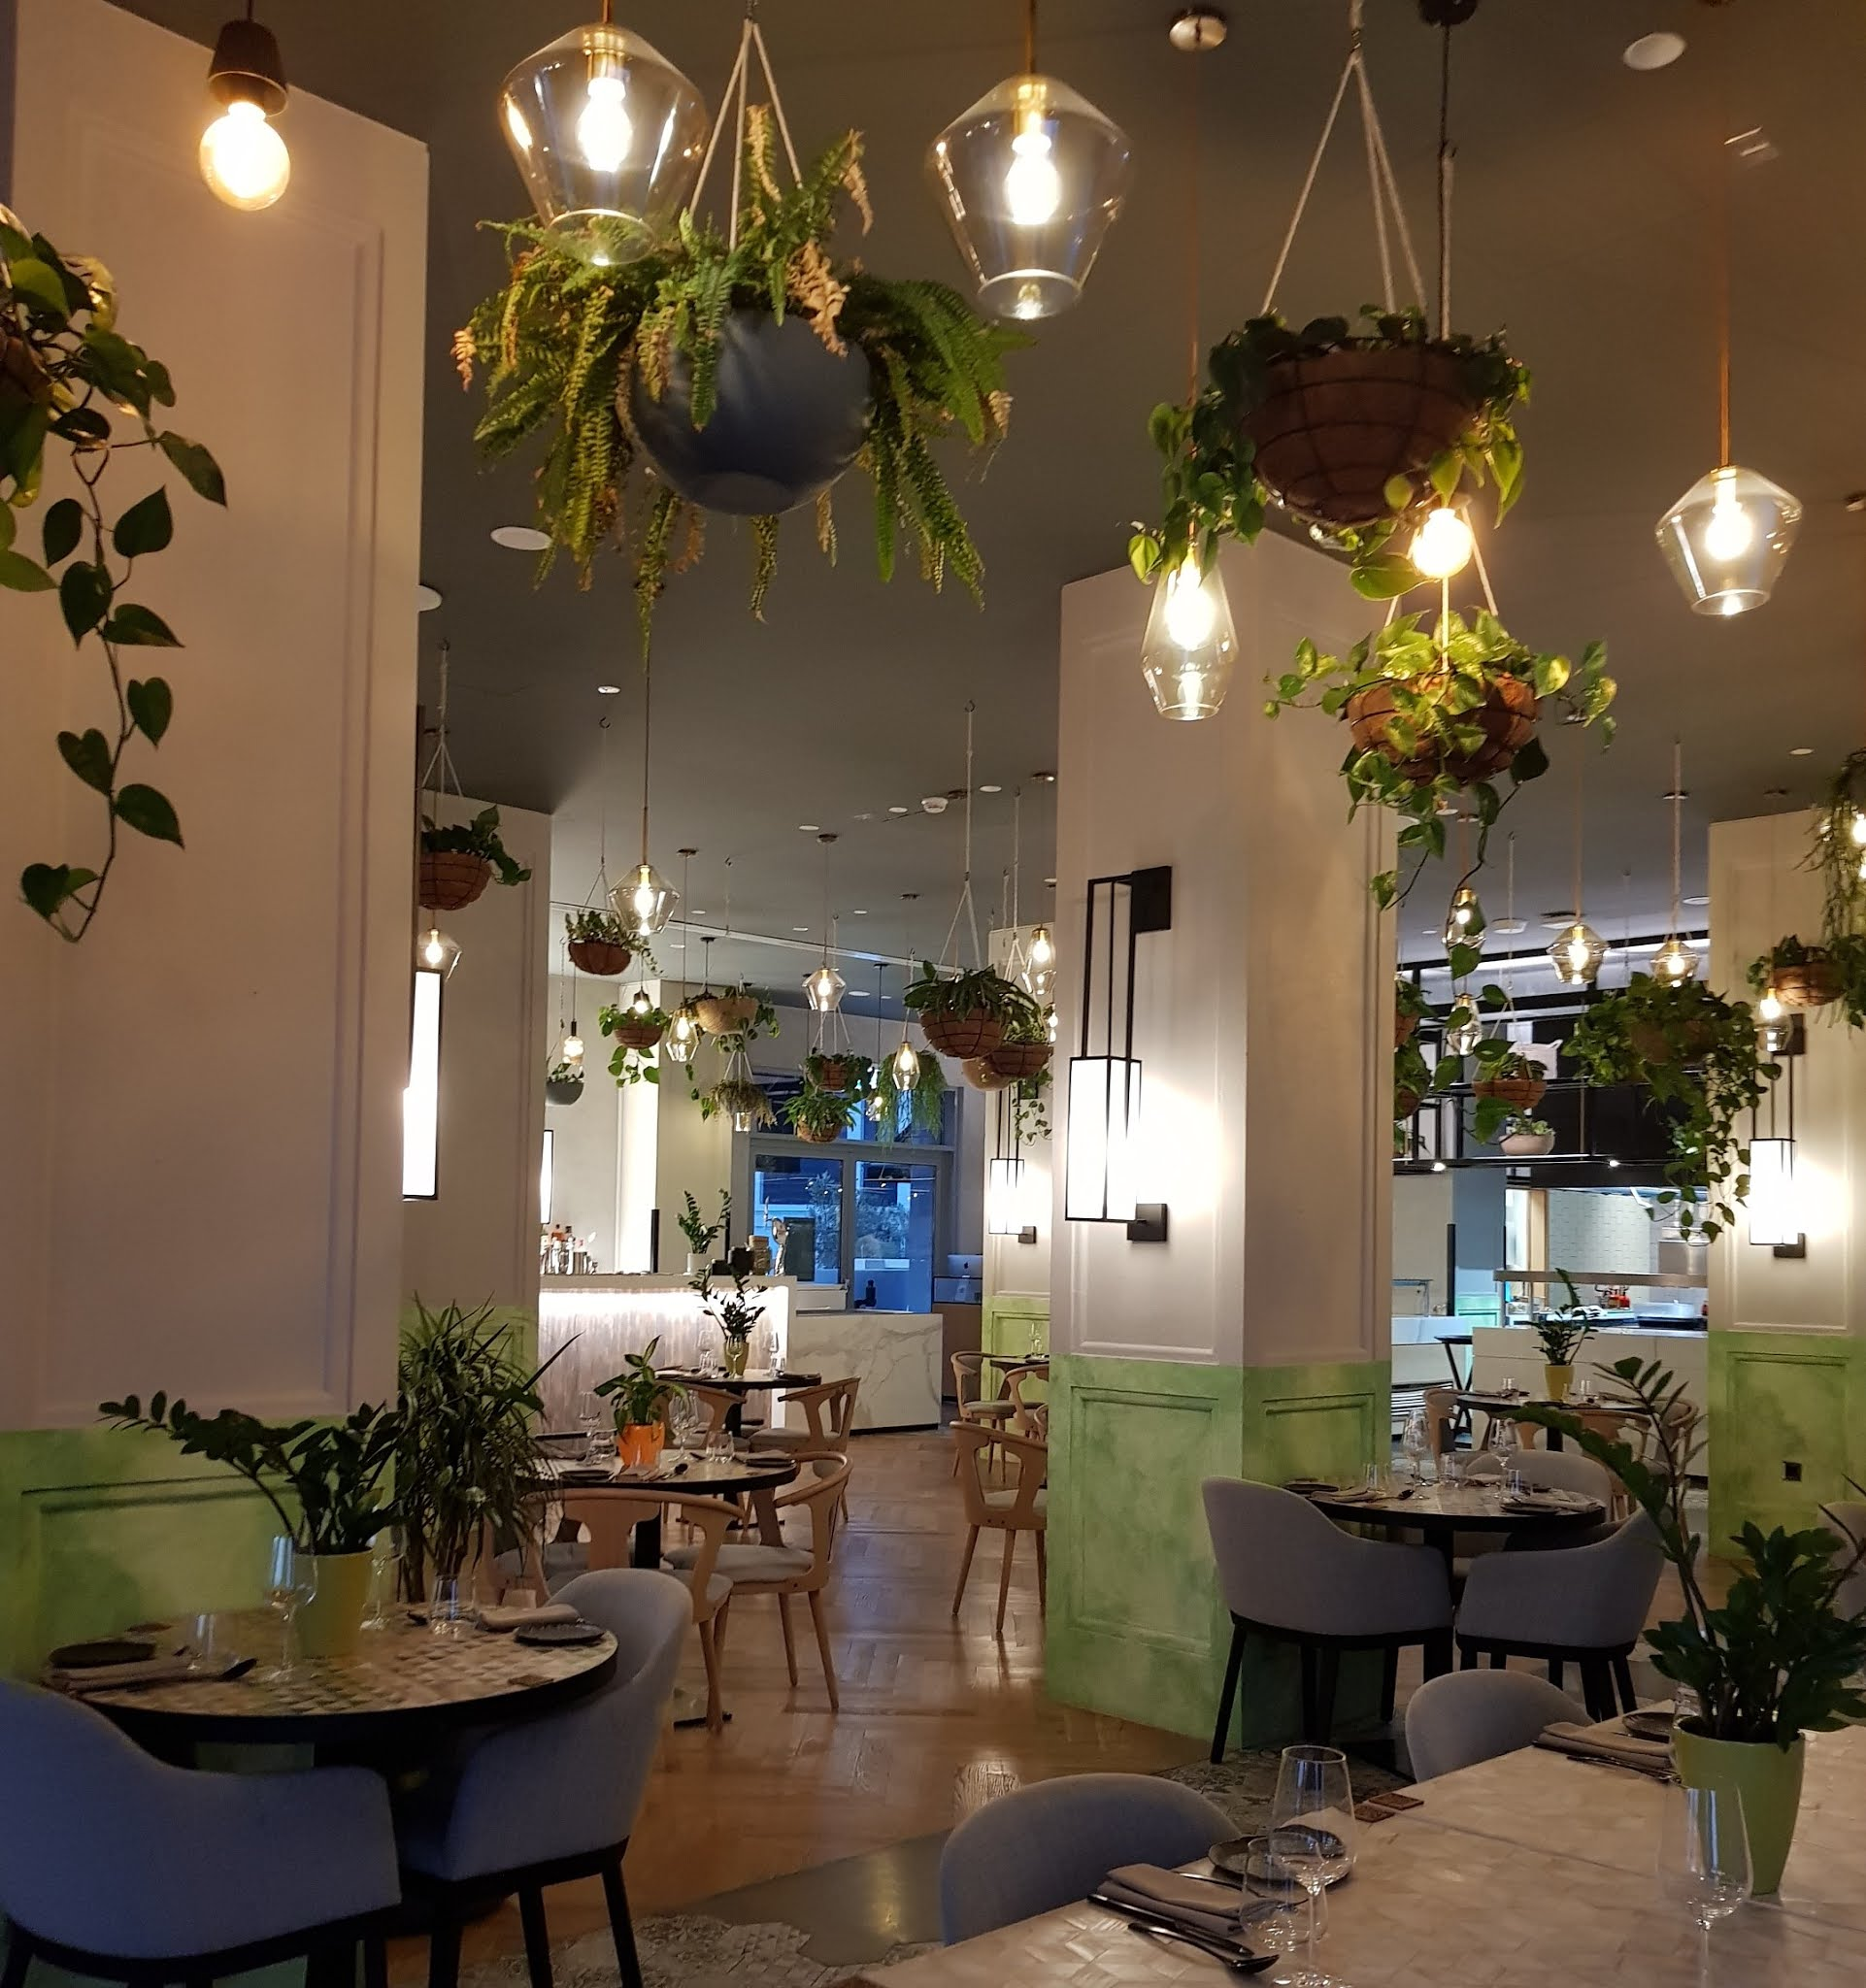 Soulgreen restaurant in Dubai - Vegan friendly restaurants in Dubai